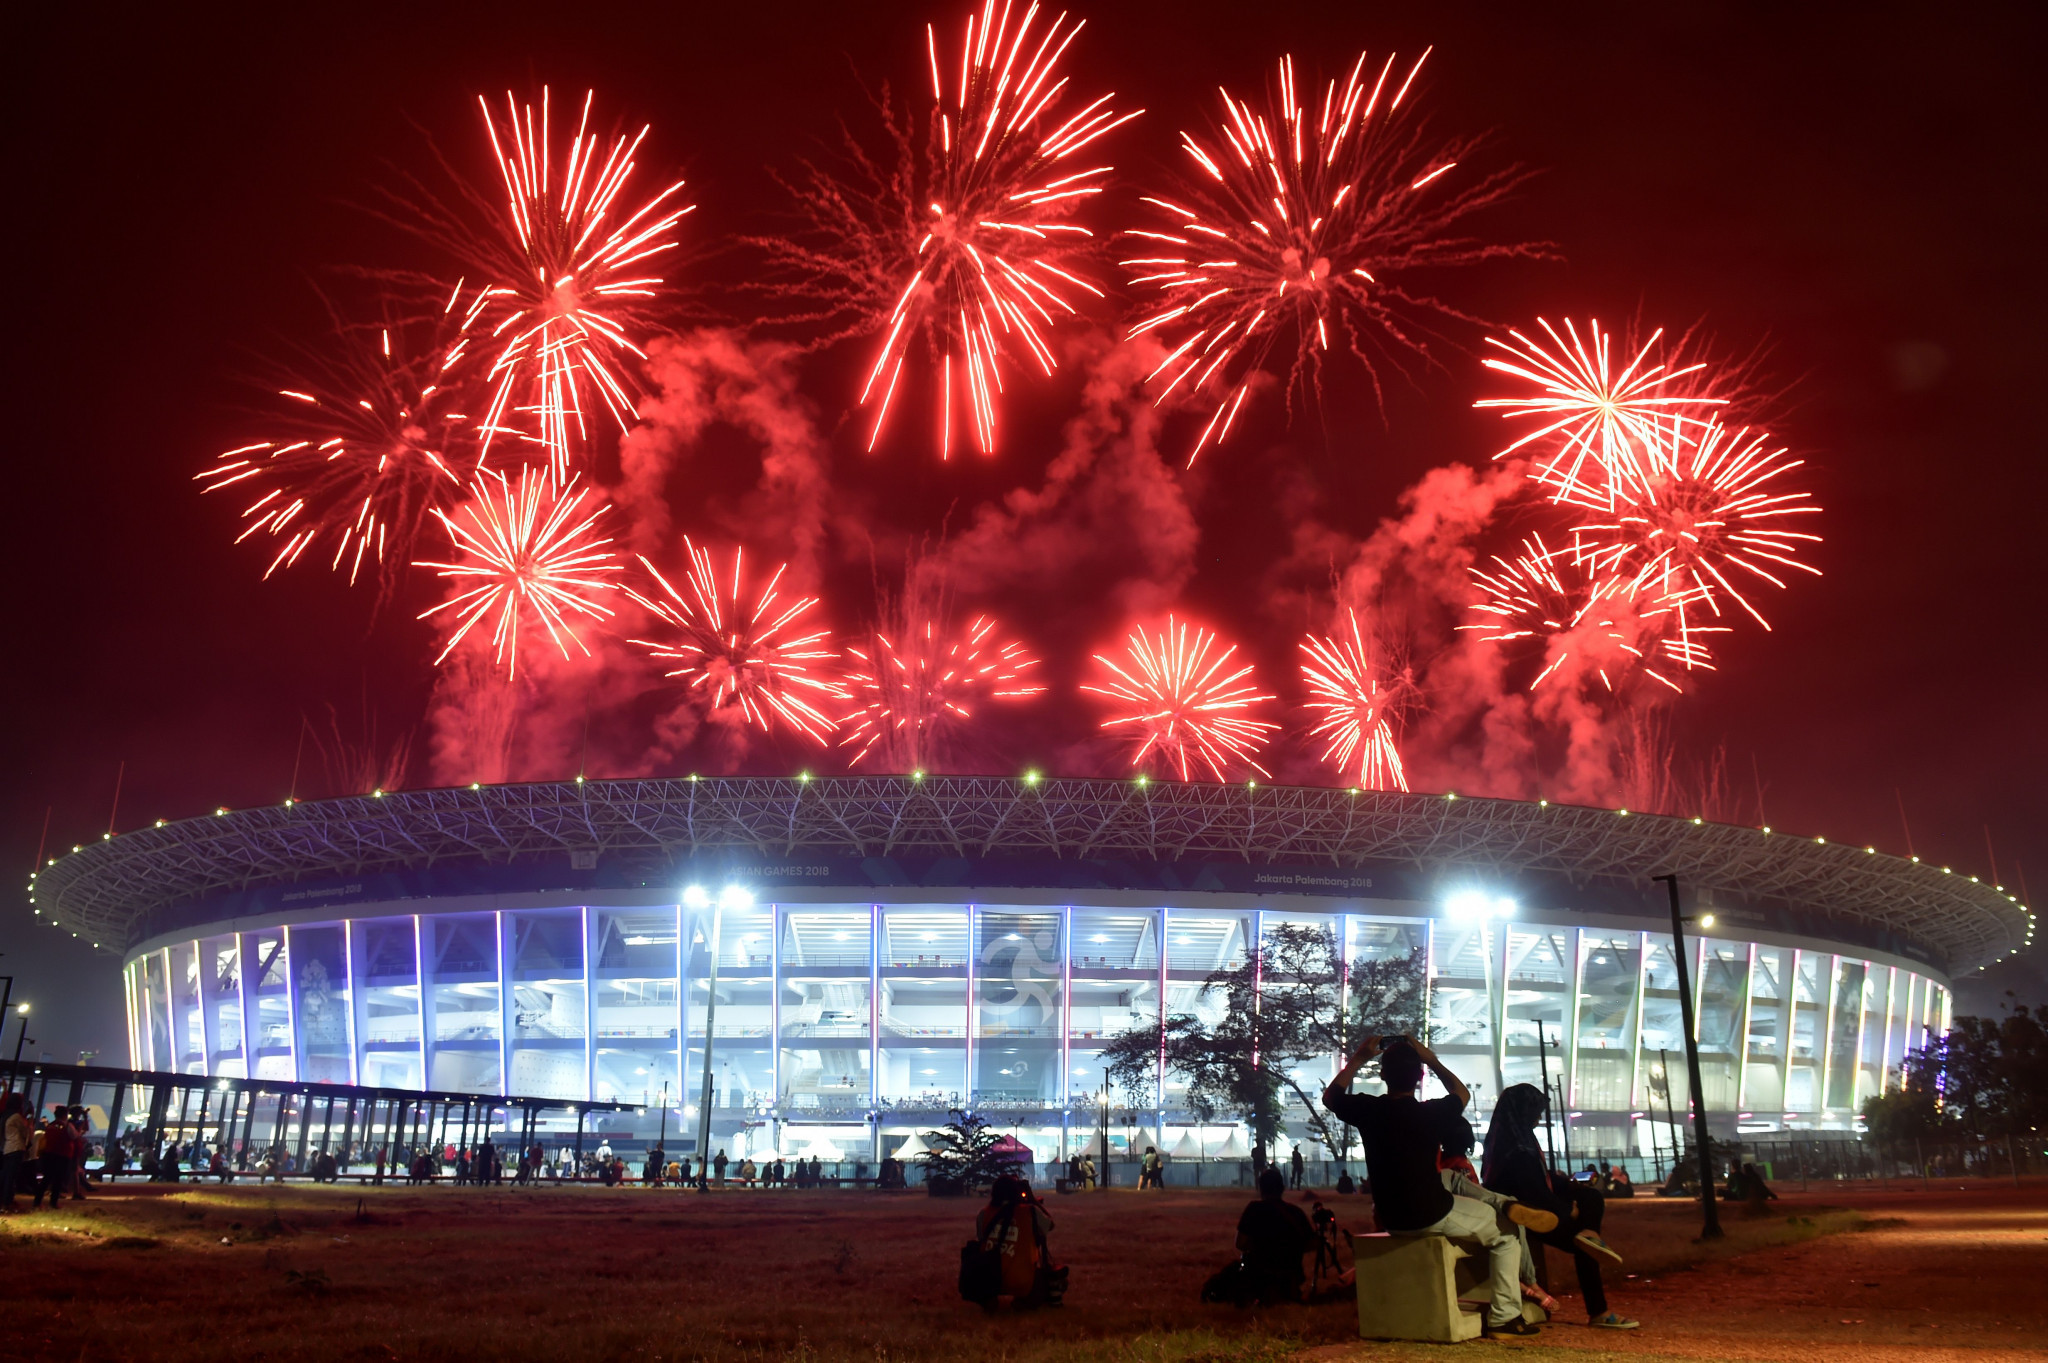 The 2018 Asian Games came to an end this evening with a spectacular Closing Ceremony at the Gelora Bung Karno Stadium in Jakarta ©Getty Images